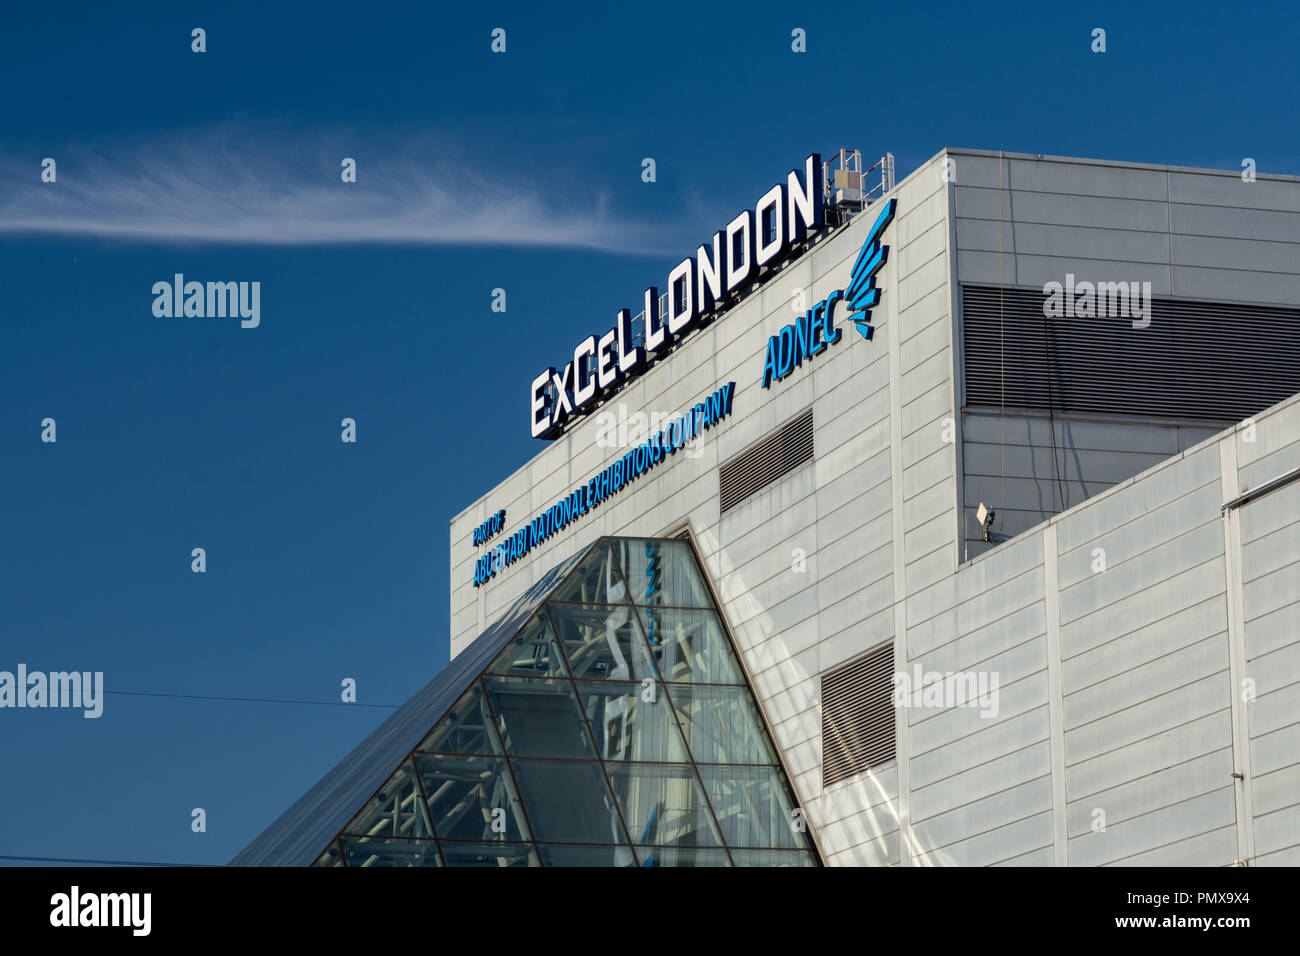 London, England, UK - September 2, 2018: A large sign marks the entrance to ExCeL exhibition centre in East London's Docklands. - Stock Image